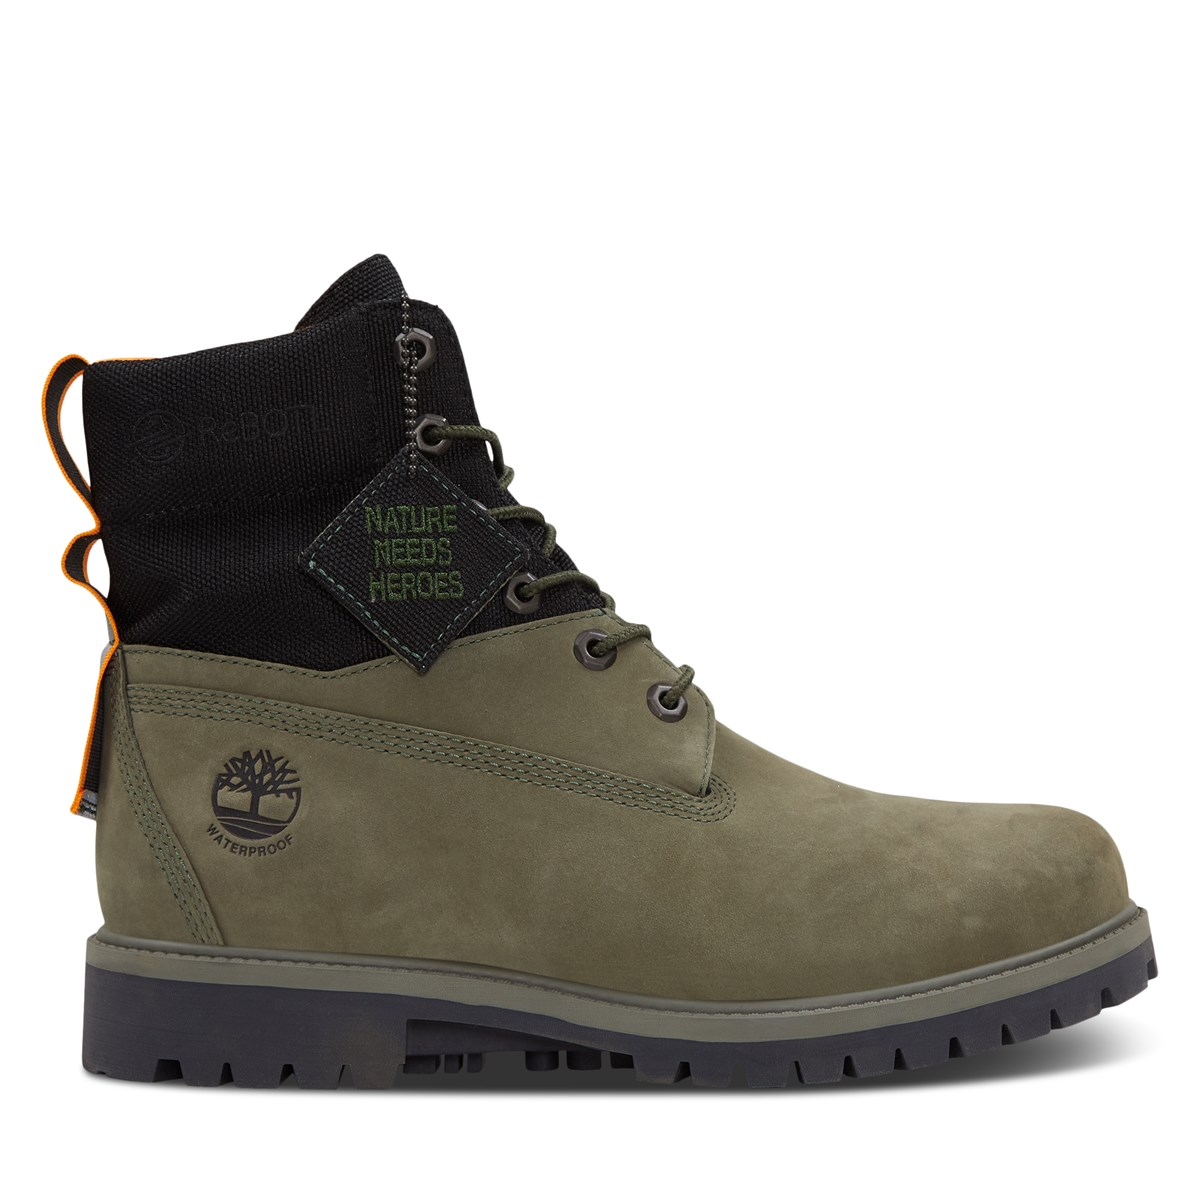 Men's 6 Premium REBOTL Waterproof Boots in Green